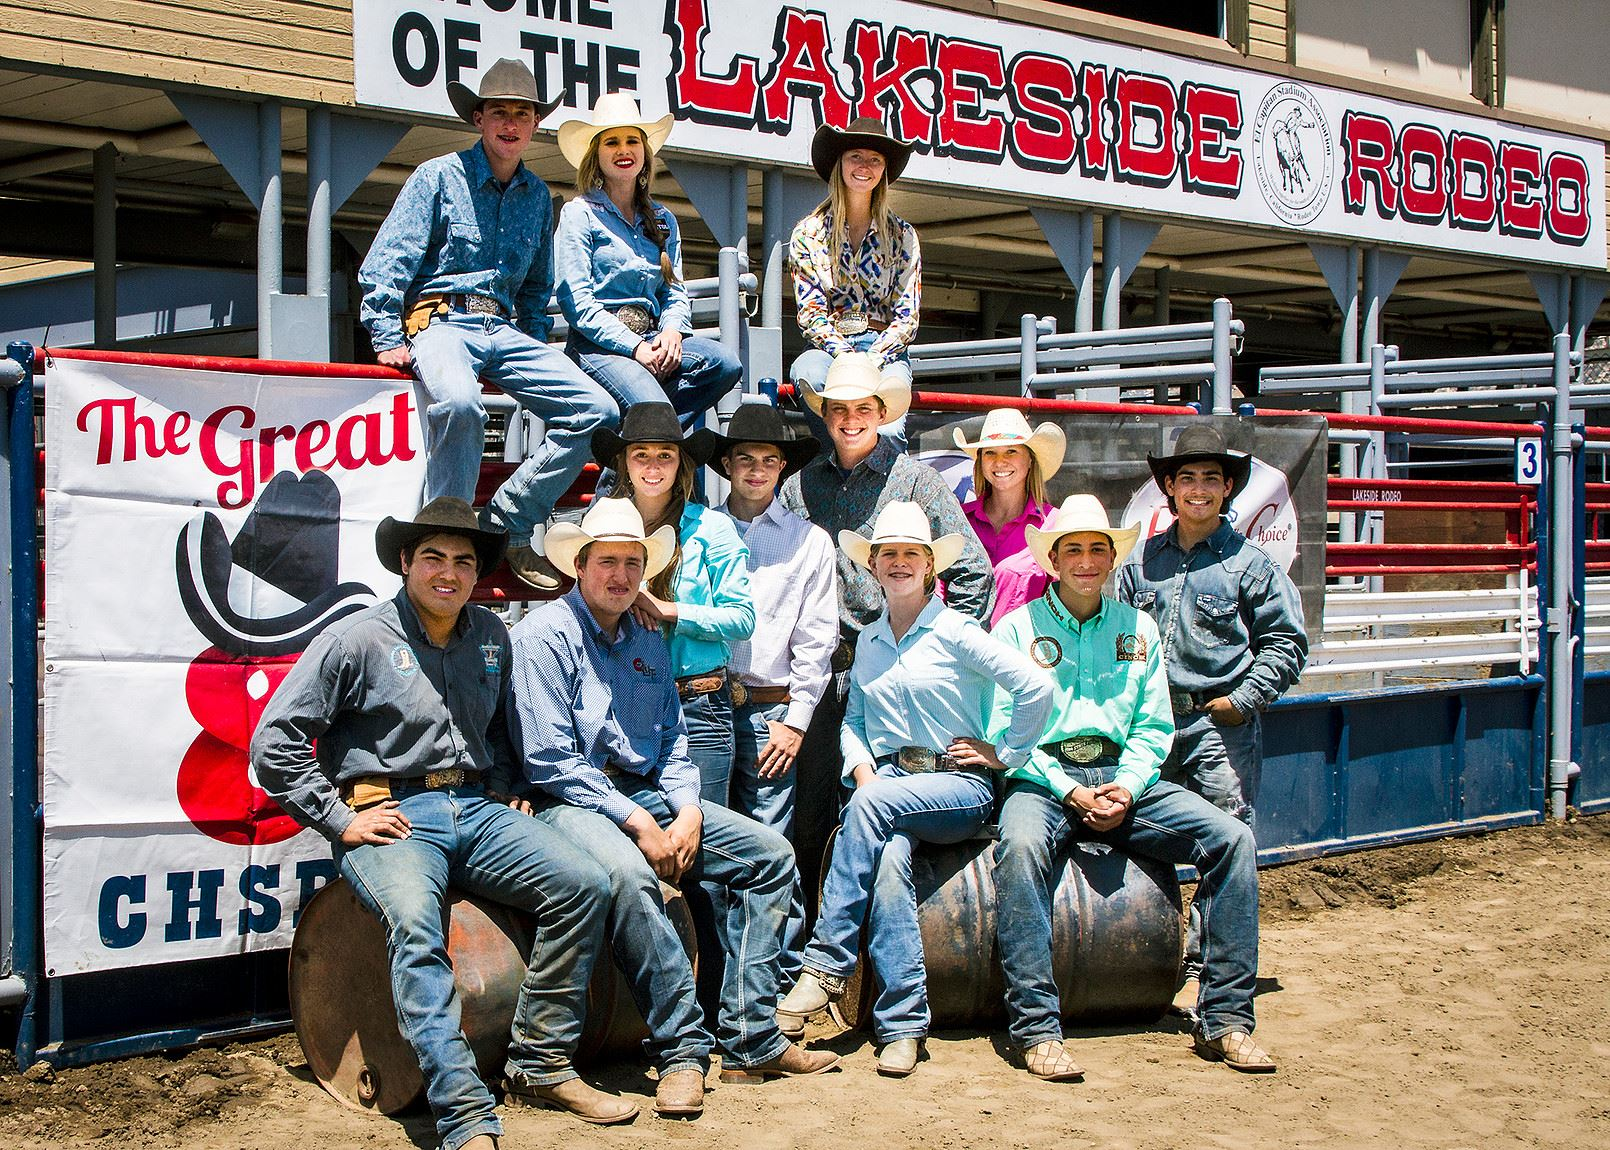 California High School Rodeo Finals - Free to Public!